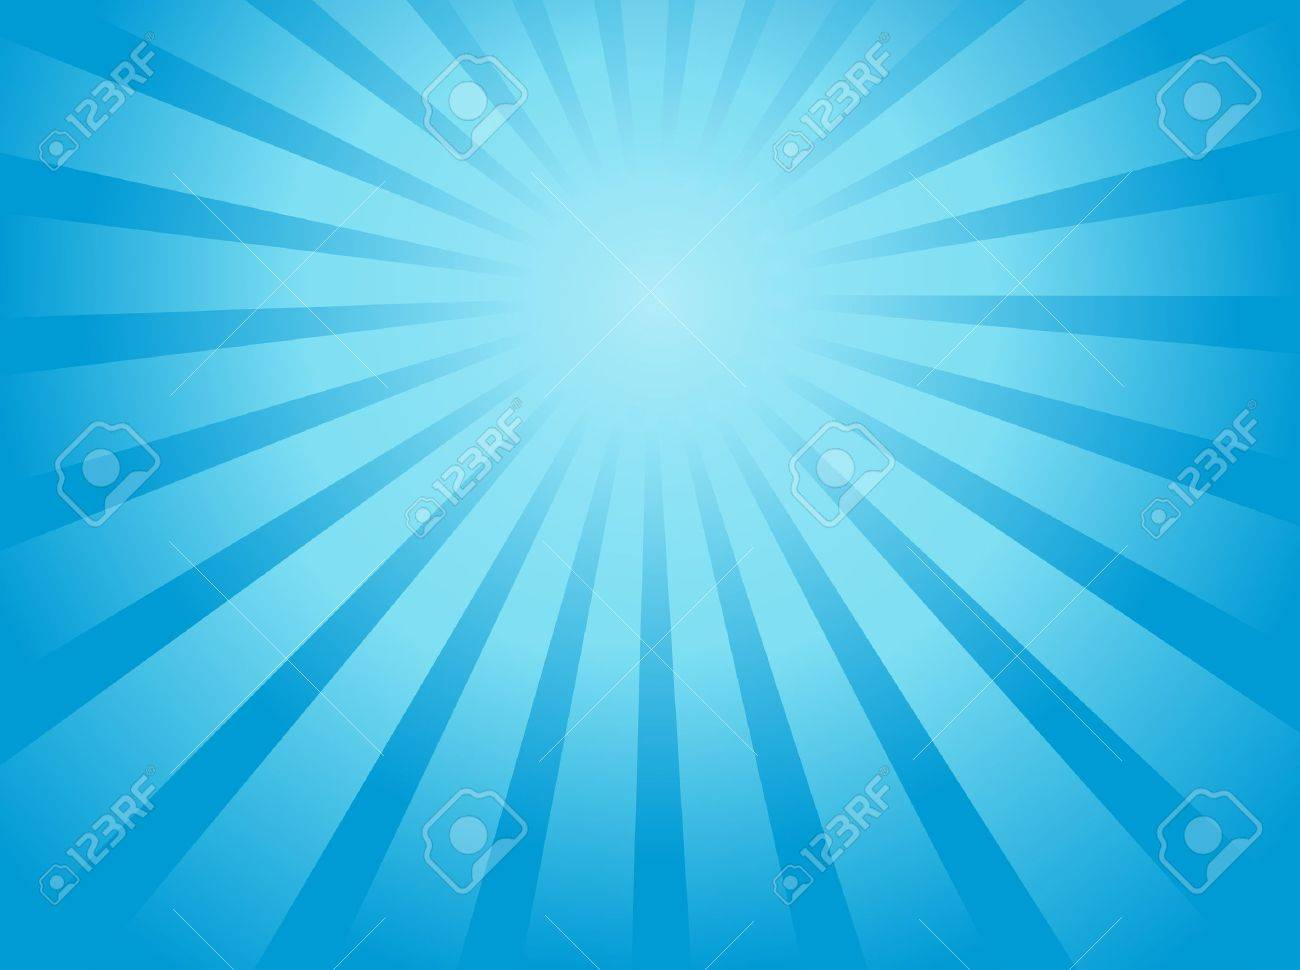 Ray theme abstract background 1 - vector illustration Stock Vector - 15045958